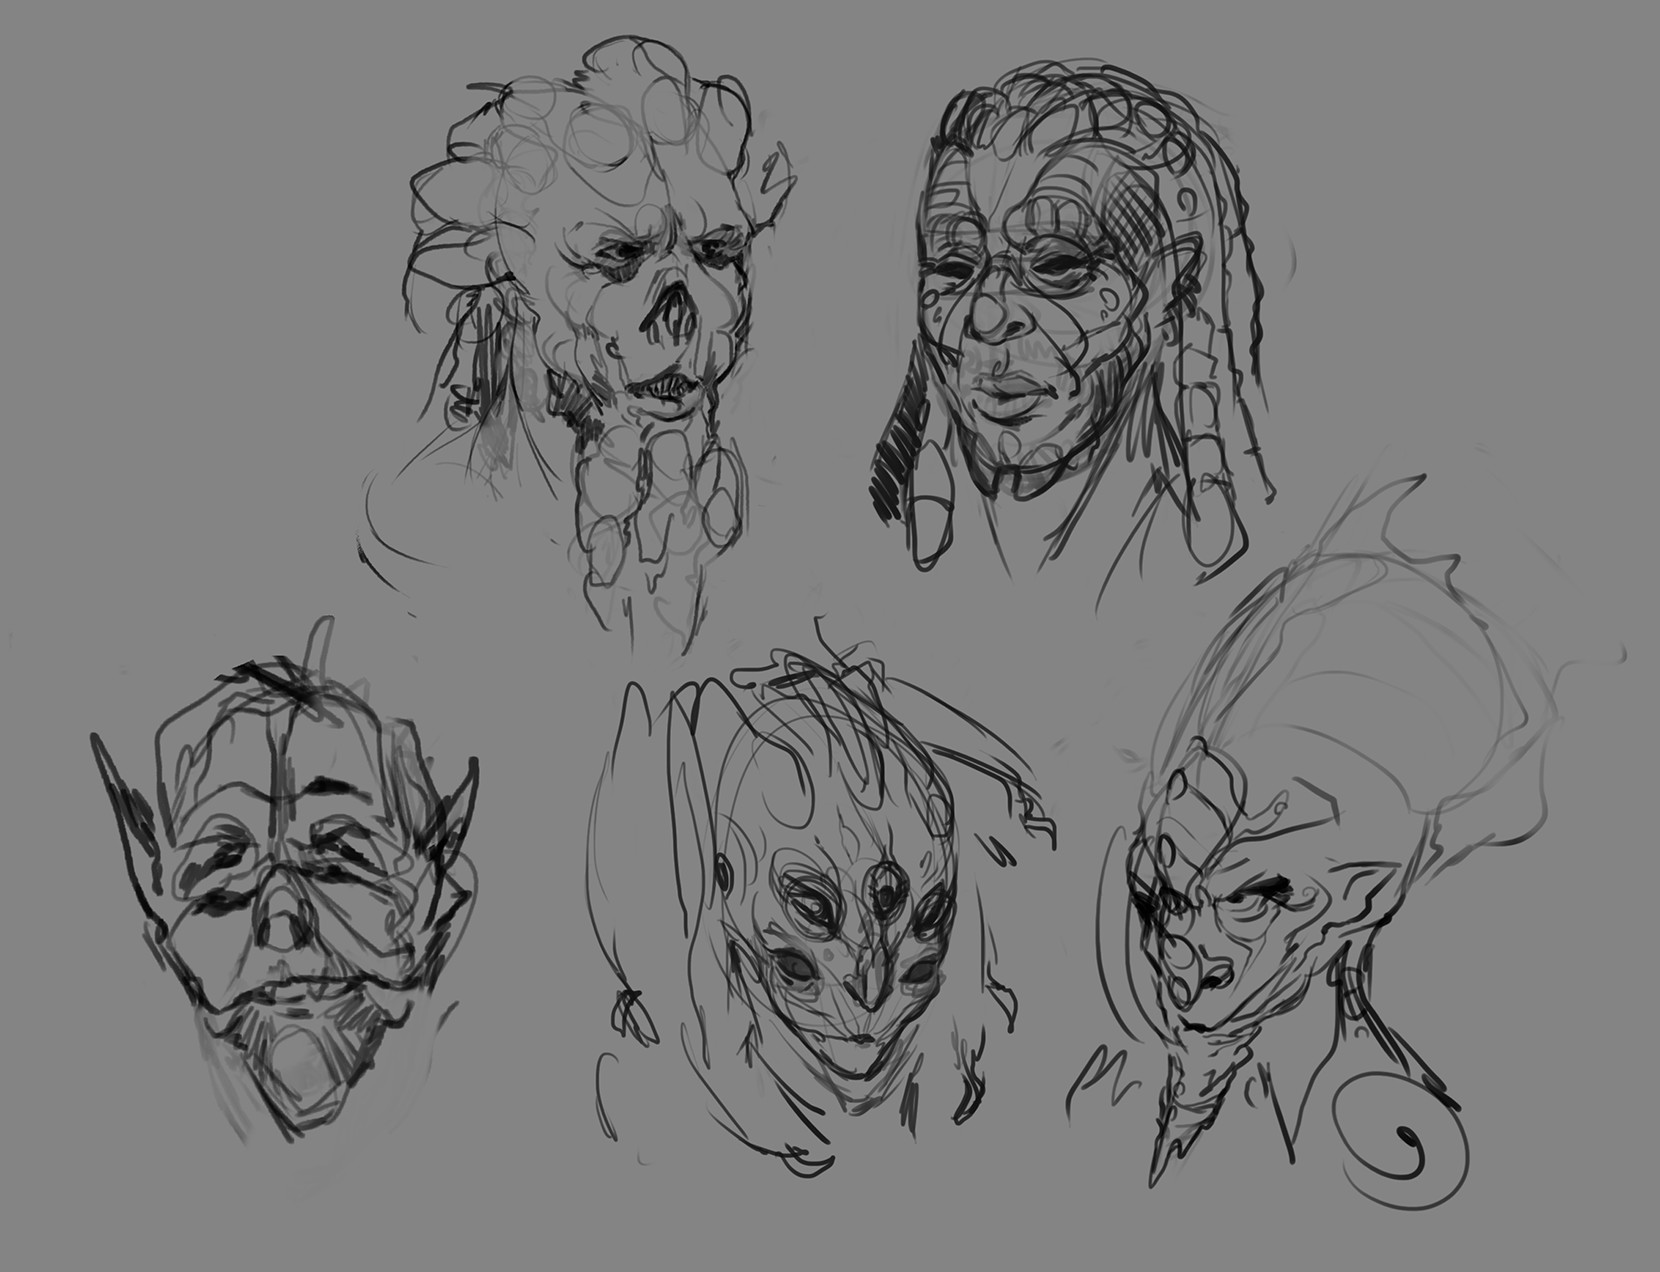 William Hoglund Mayer Tzimisce Vampire Concepts The only thing i remember there is the mummy thing on a table. tzimisce vampire concepts